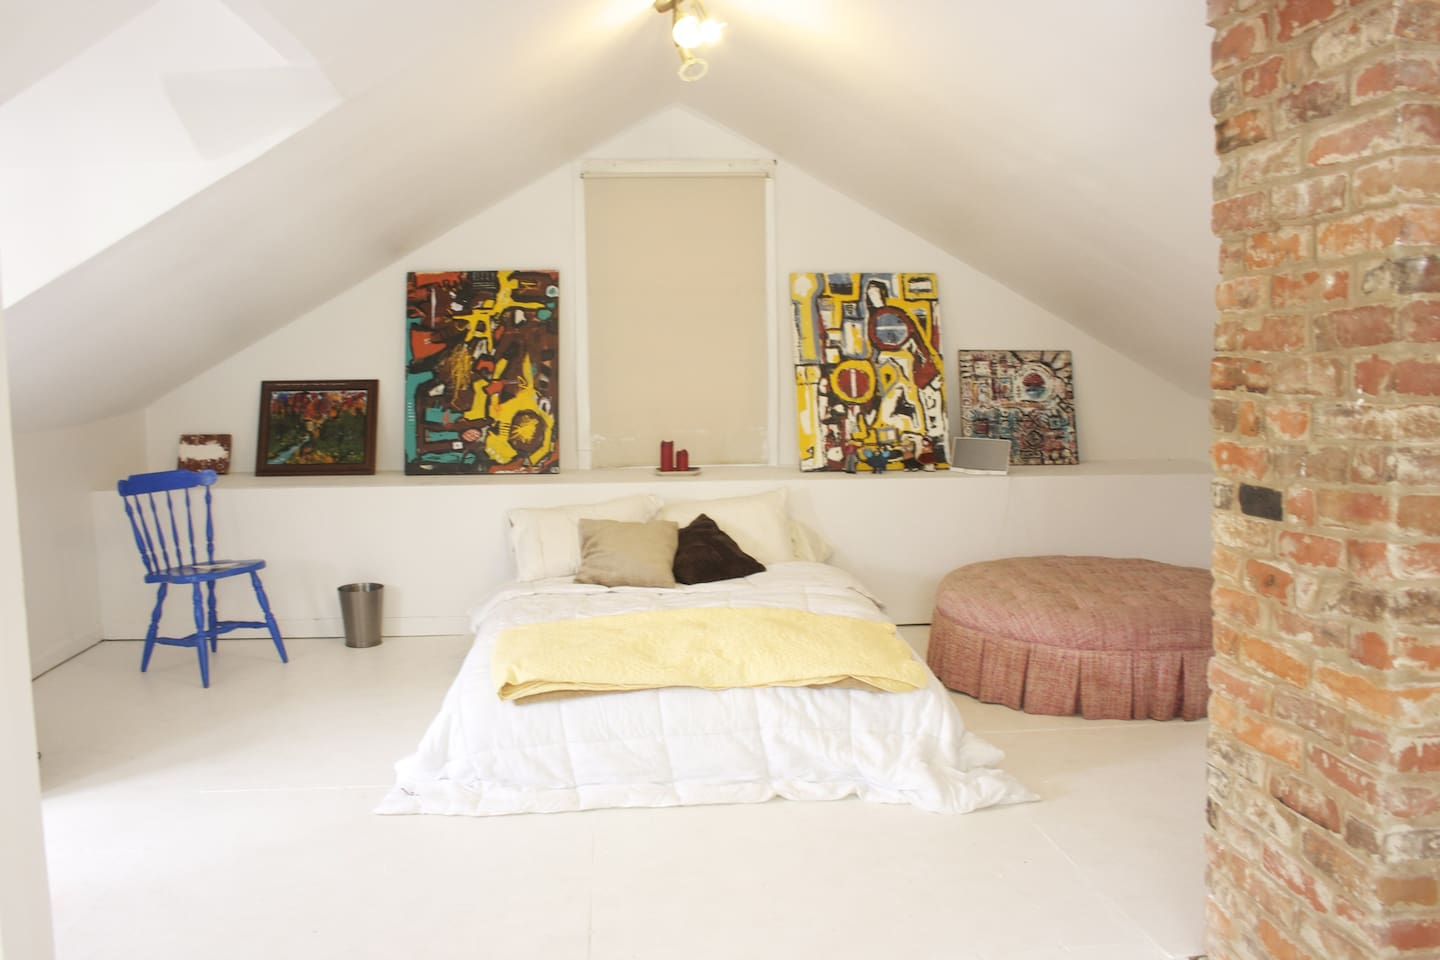 Comfortable and quiet bedroom with cool art and seating areas.